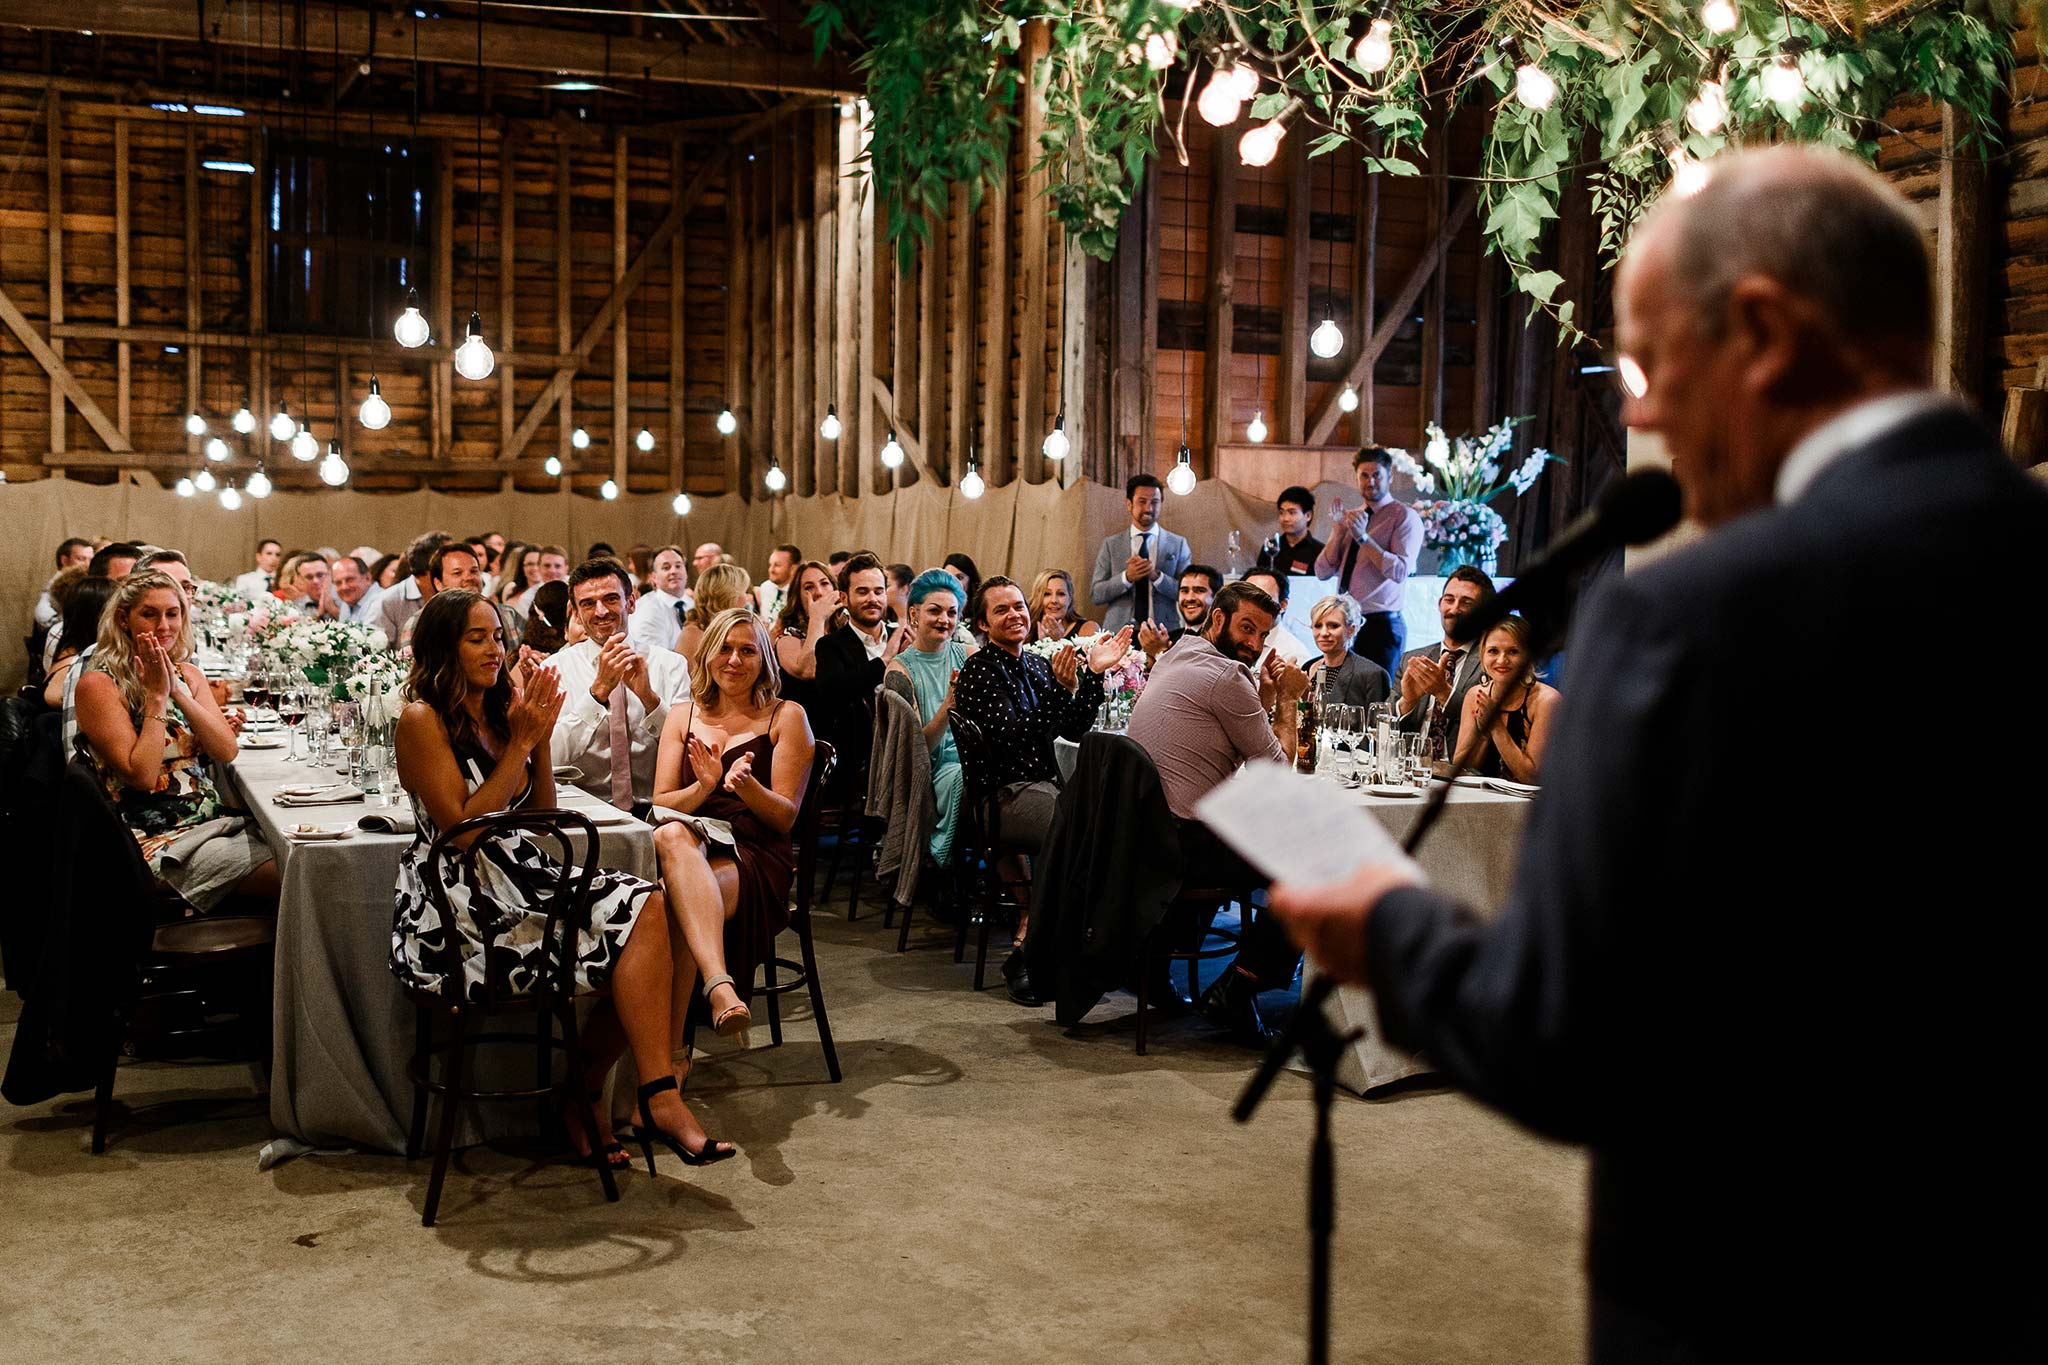 Launceston-Brickendon-barn-Wedding-Photographer-reception-dad-speech